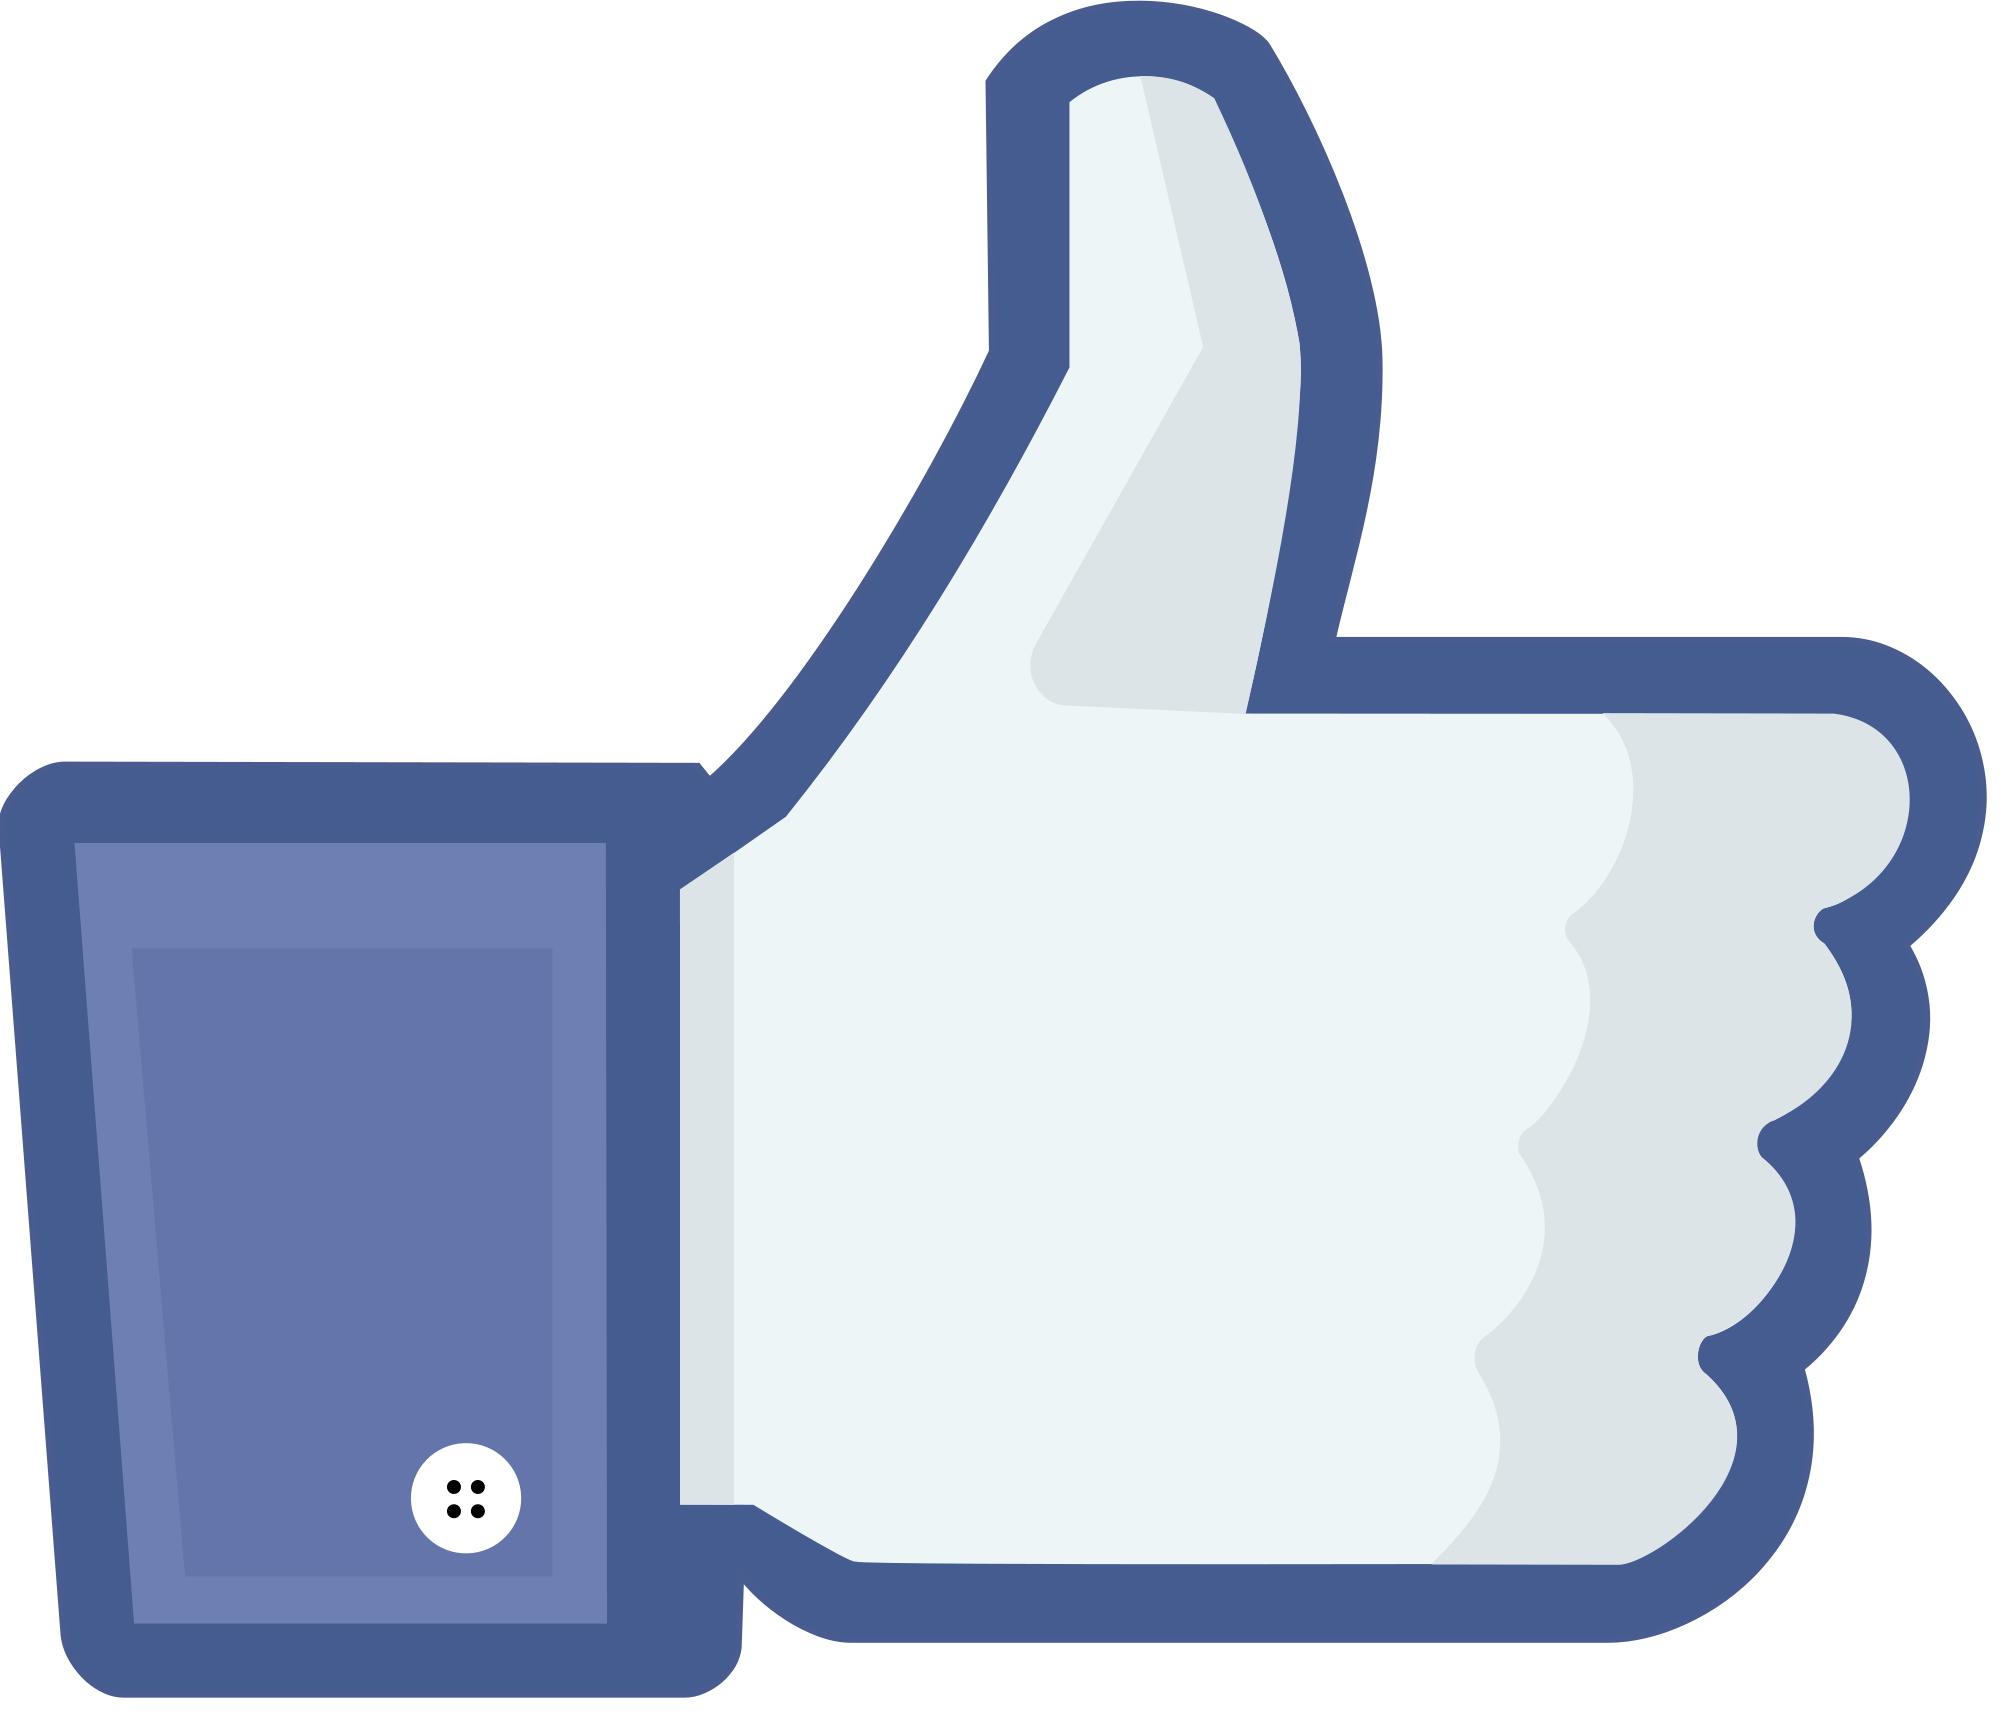 Facebook like icon png transparent. File thumb wikimedia commons